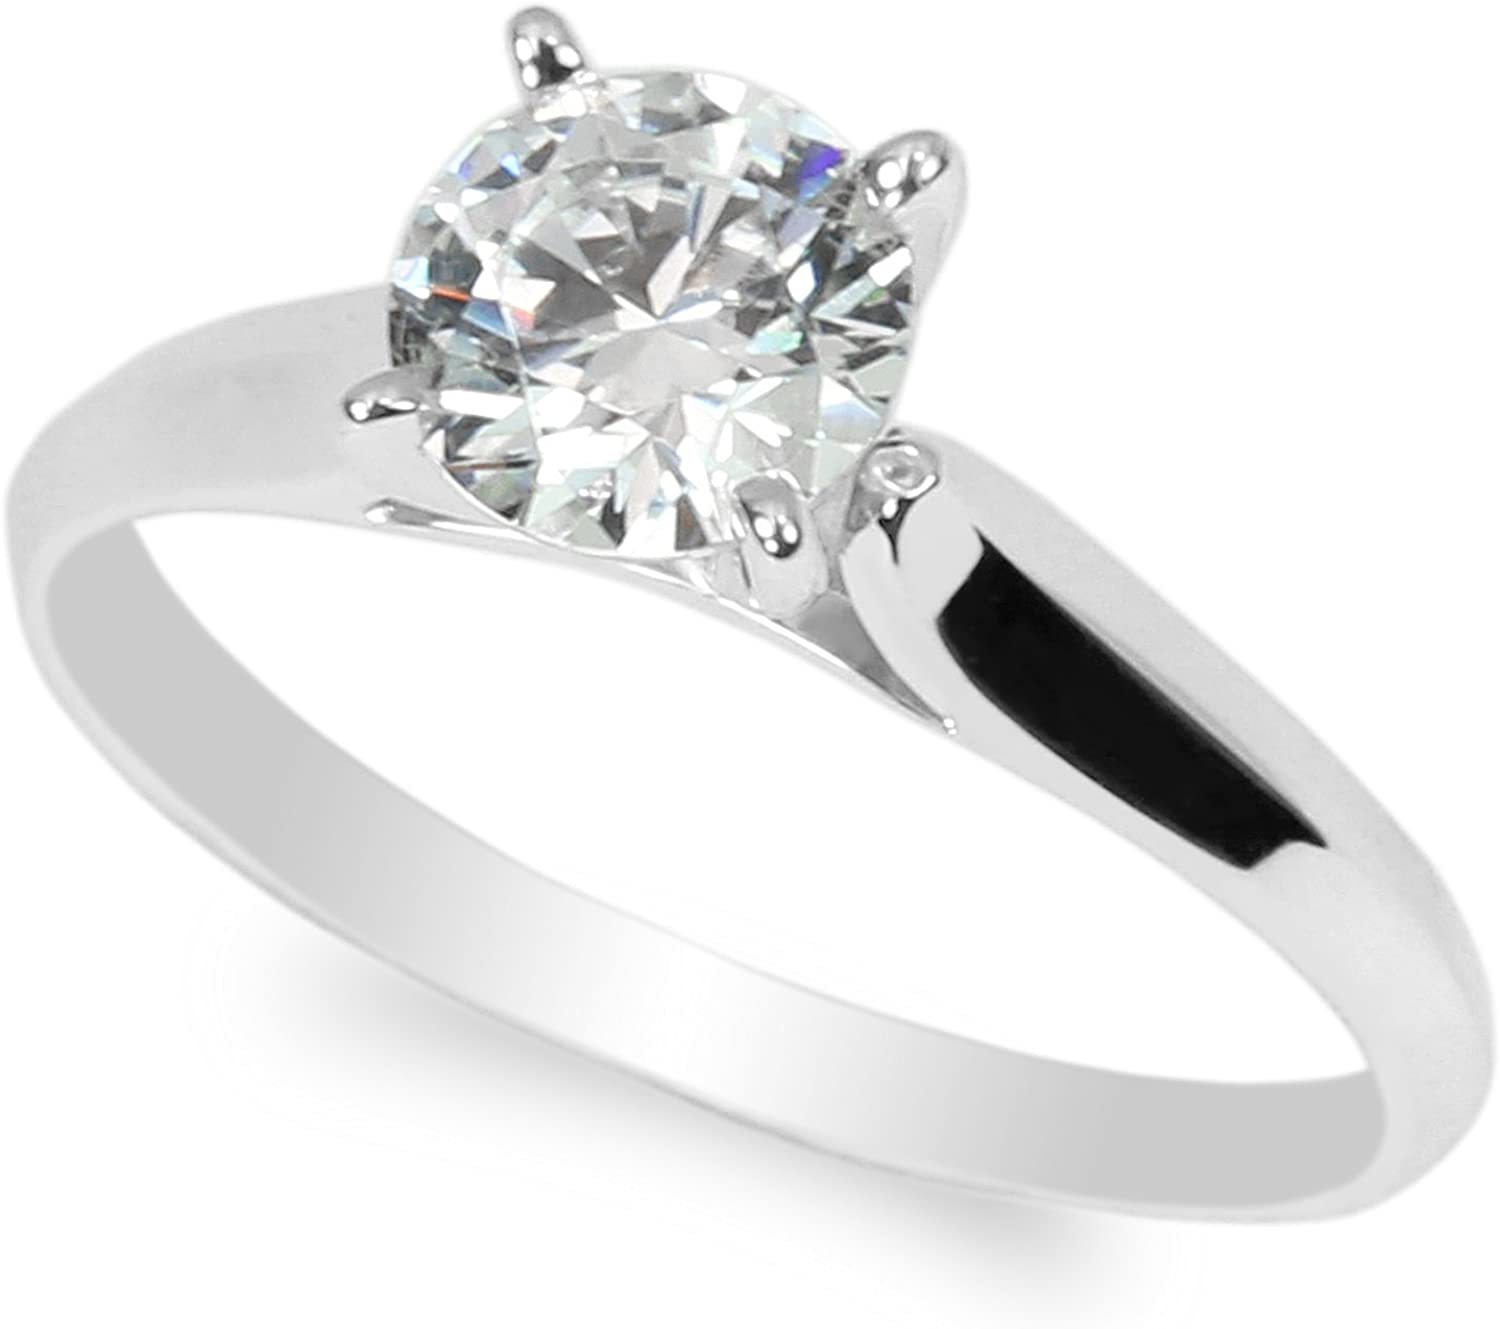 JamesJenny 10K White Gold 1.0ct Round CZ Classic Solid Engagement & Wedding Solitaire Ring Size 4-10